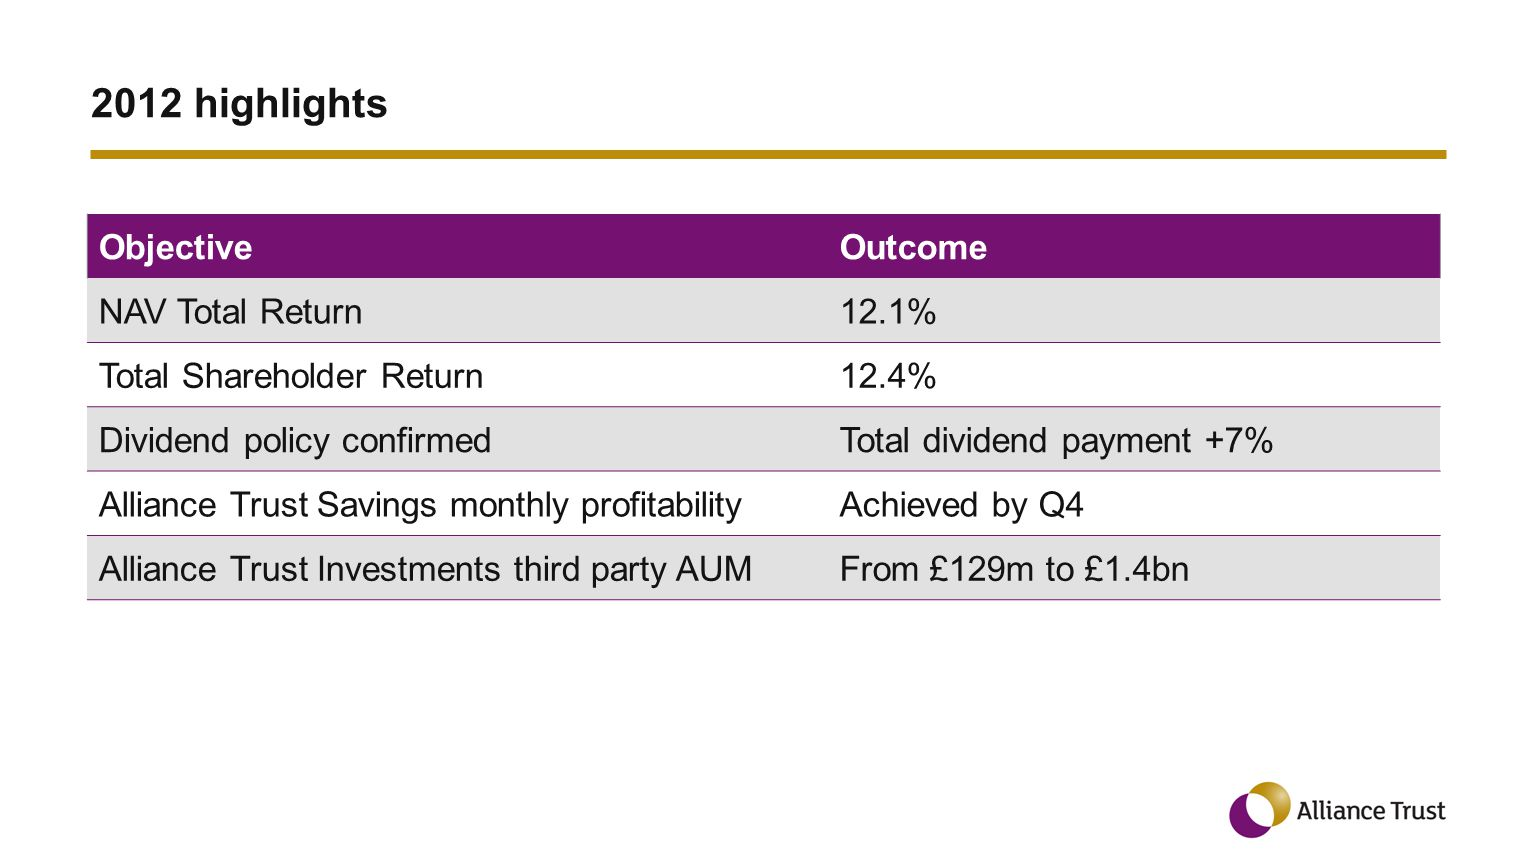 2012 highlights ObjectiveOutcome NAV Total Return12.1% Total Shareholder Return12.4% Dividend policy confirmedTotal dividend payment +7% Alliance Trust Savings monthly profitabilityAchieved by Q4 Alliance Trust Investments third party AUMFrom £129m to £1.4bn